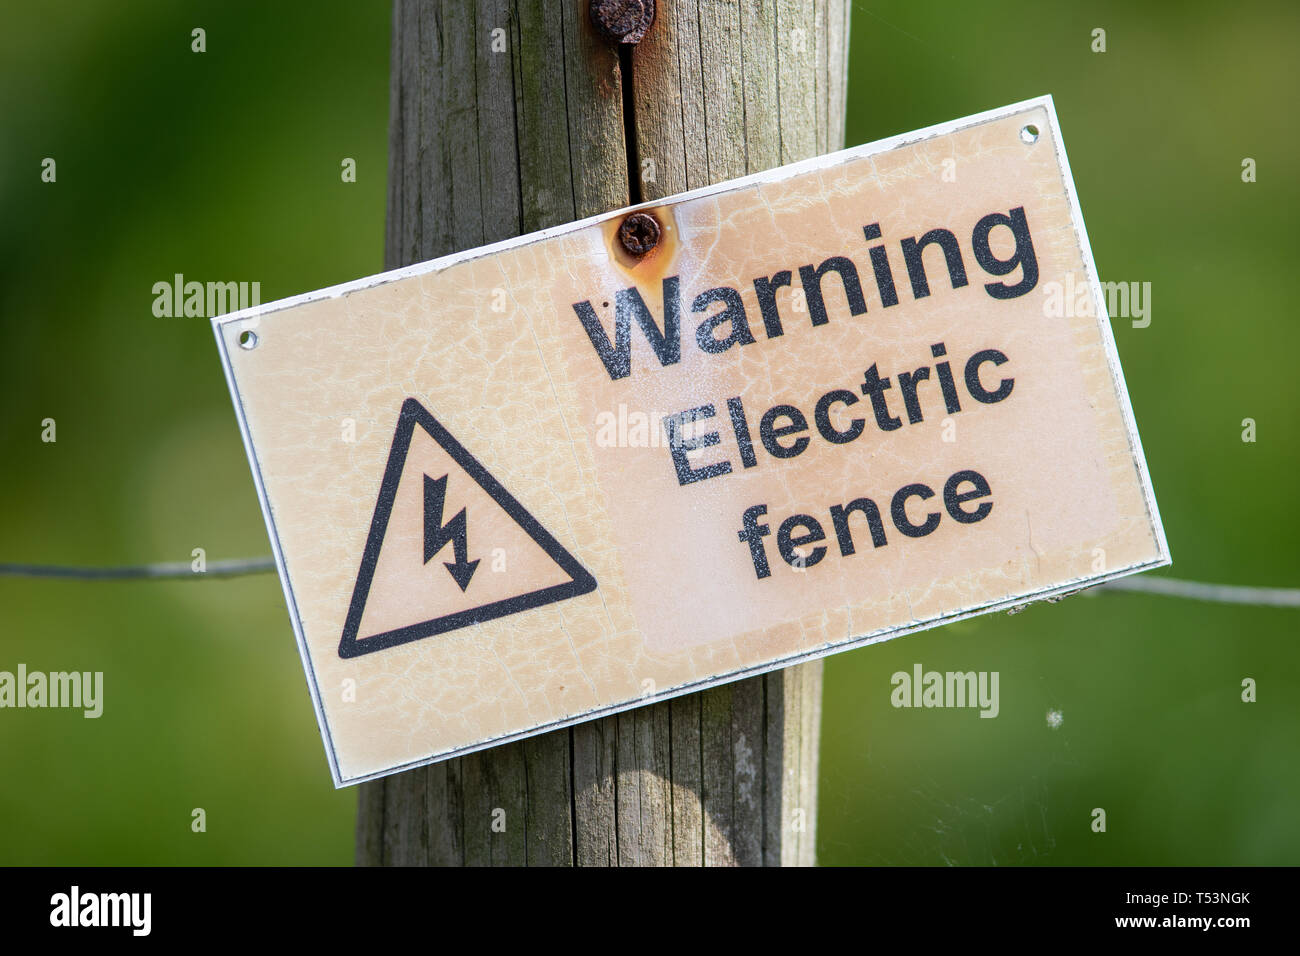 A crooked sign warning people that an electric fence is present. The sign is attached to a wire fence with a green background. - Stock Image